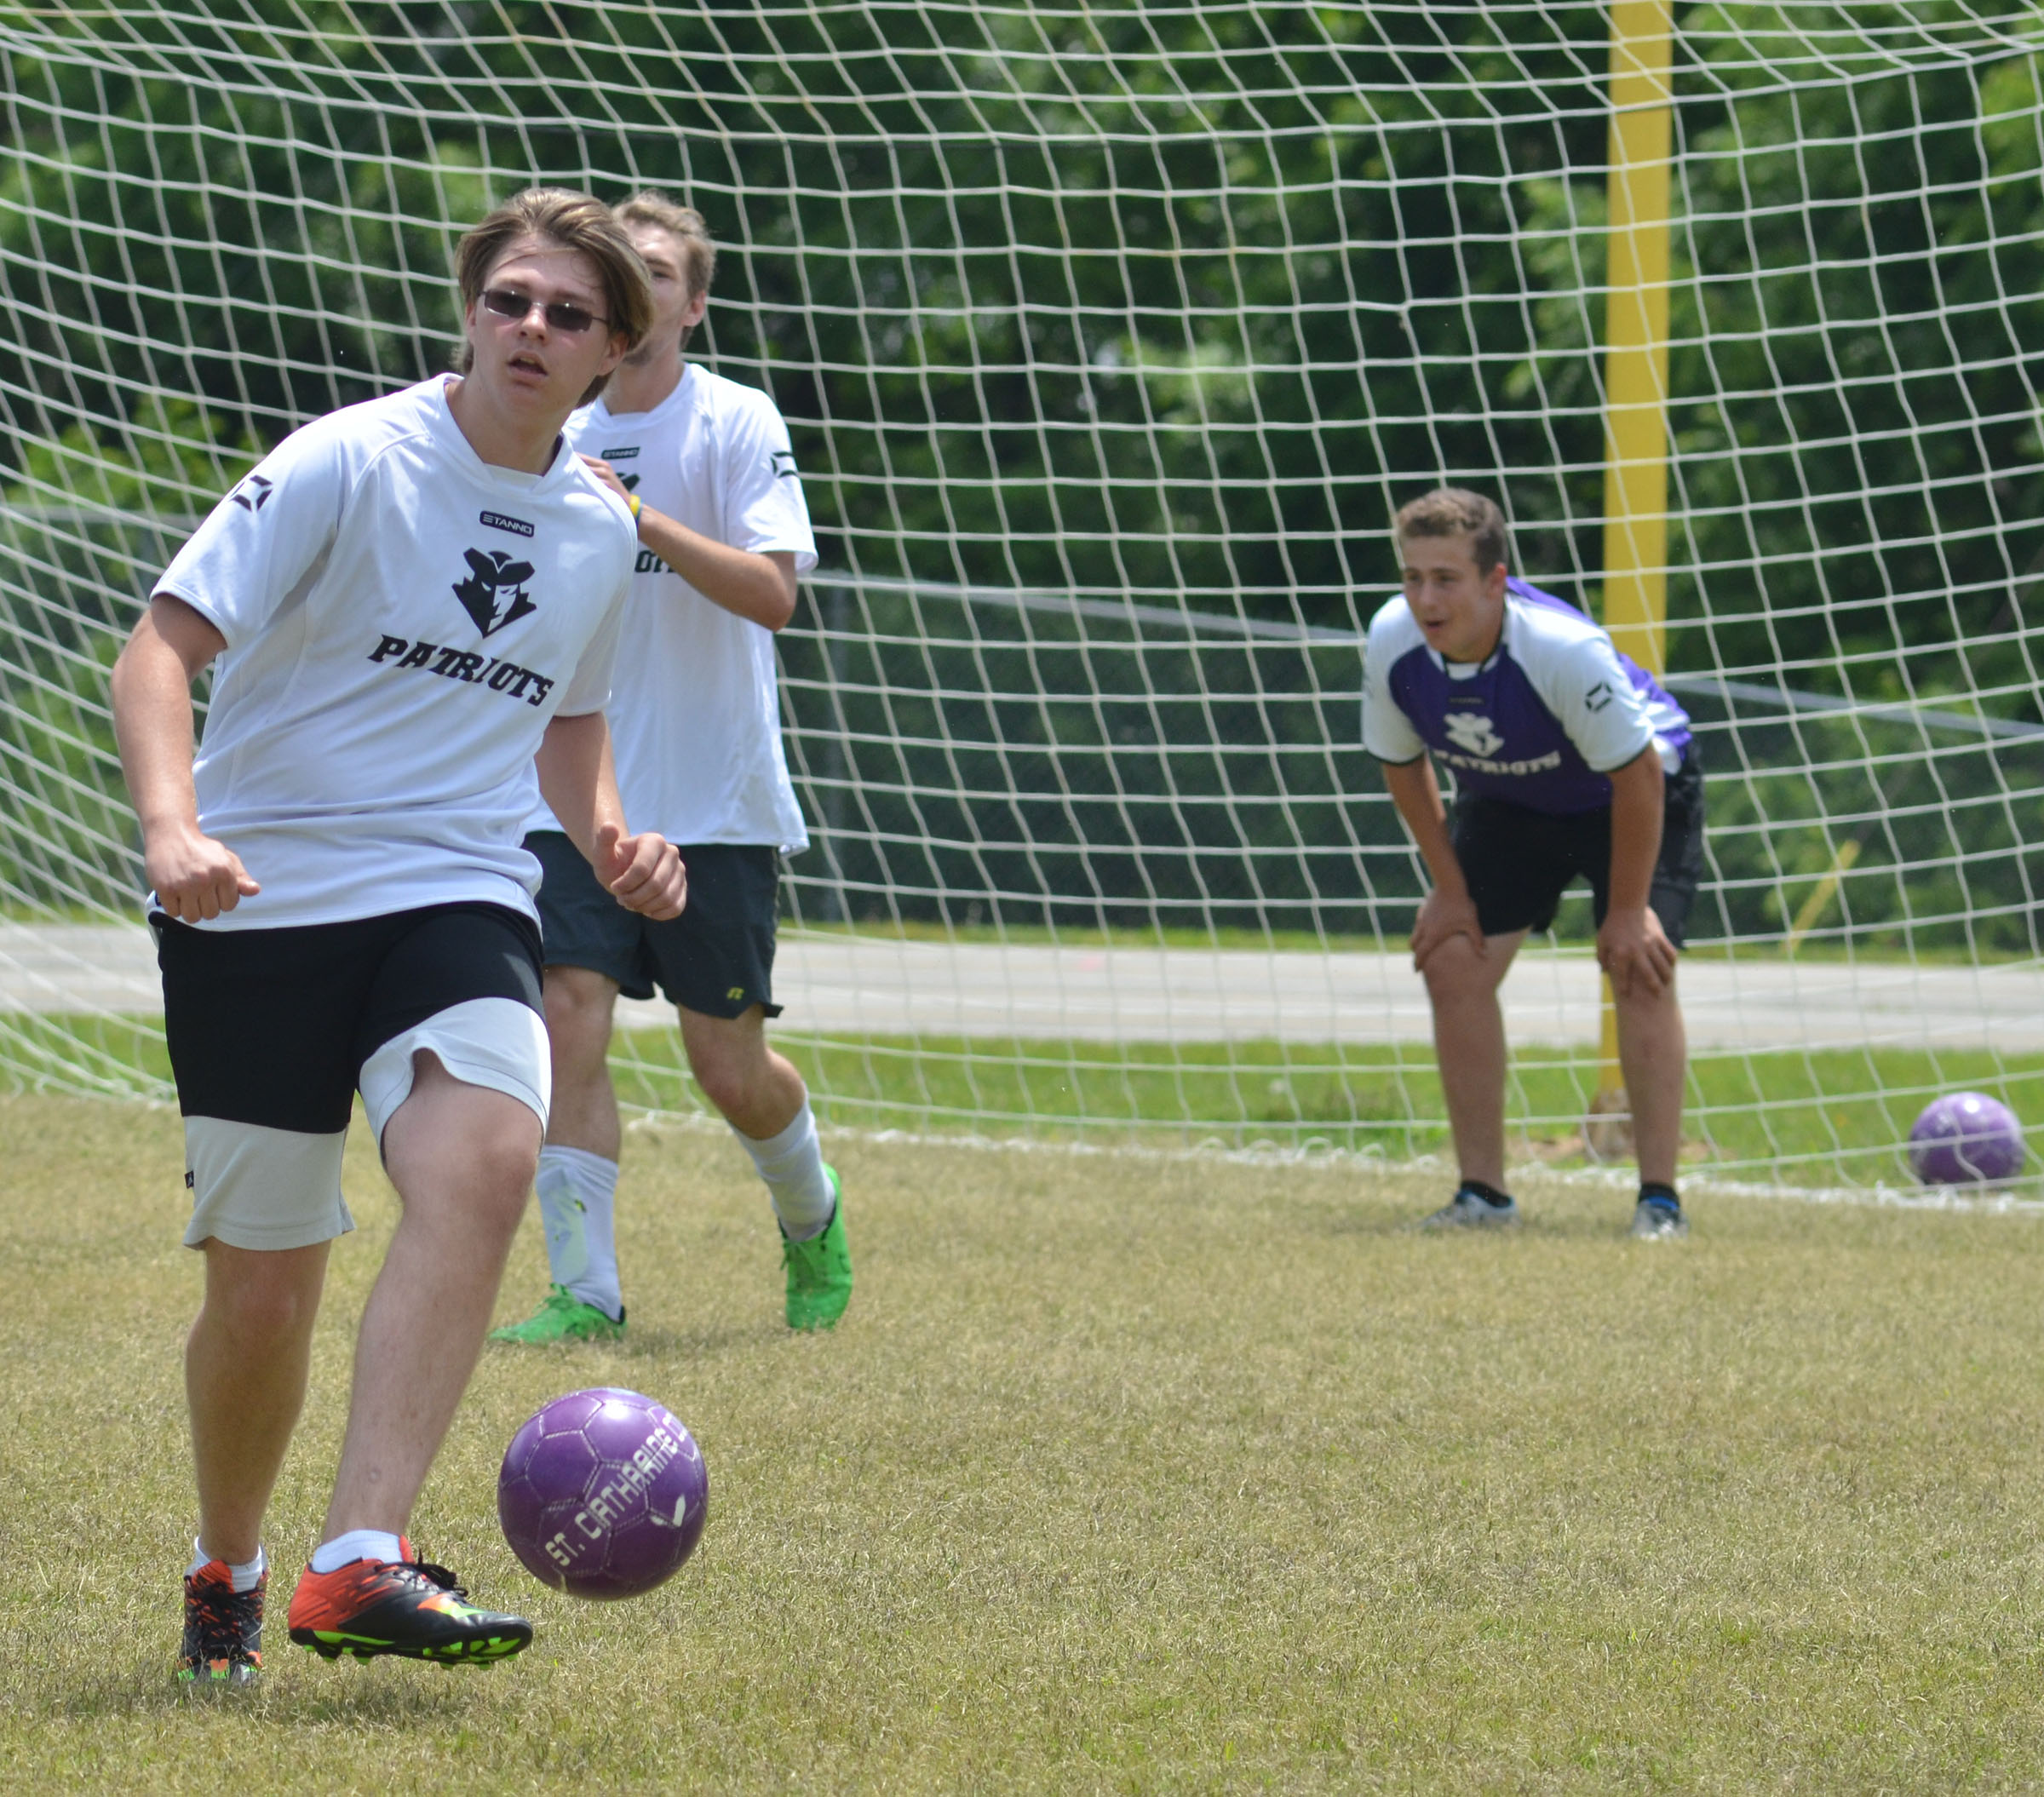 CHS junior Keidlan Boils kicks the ball.